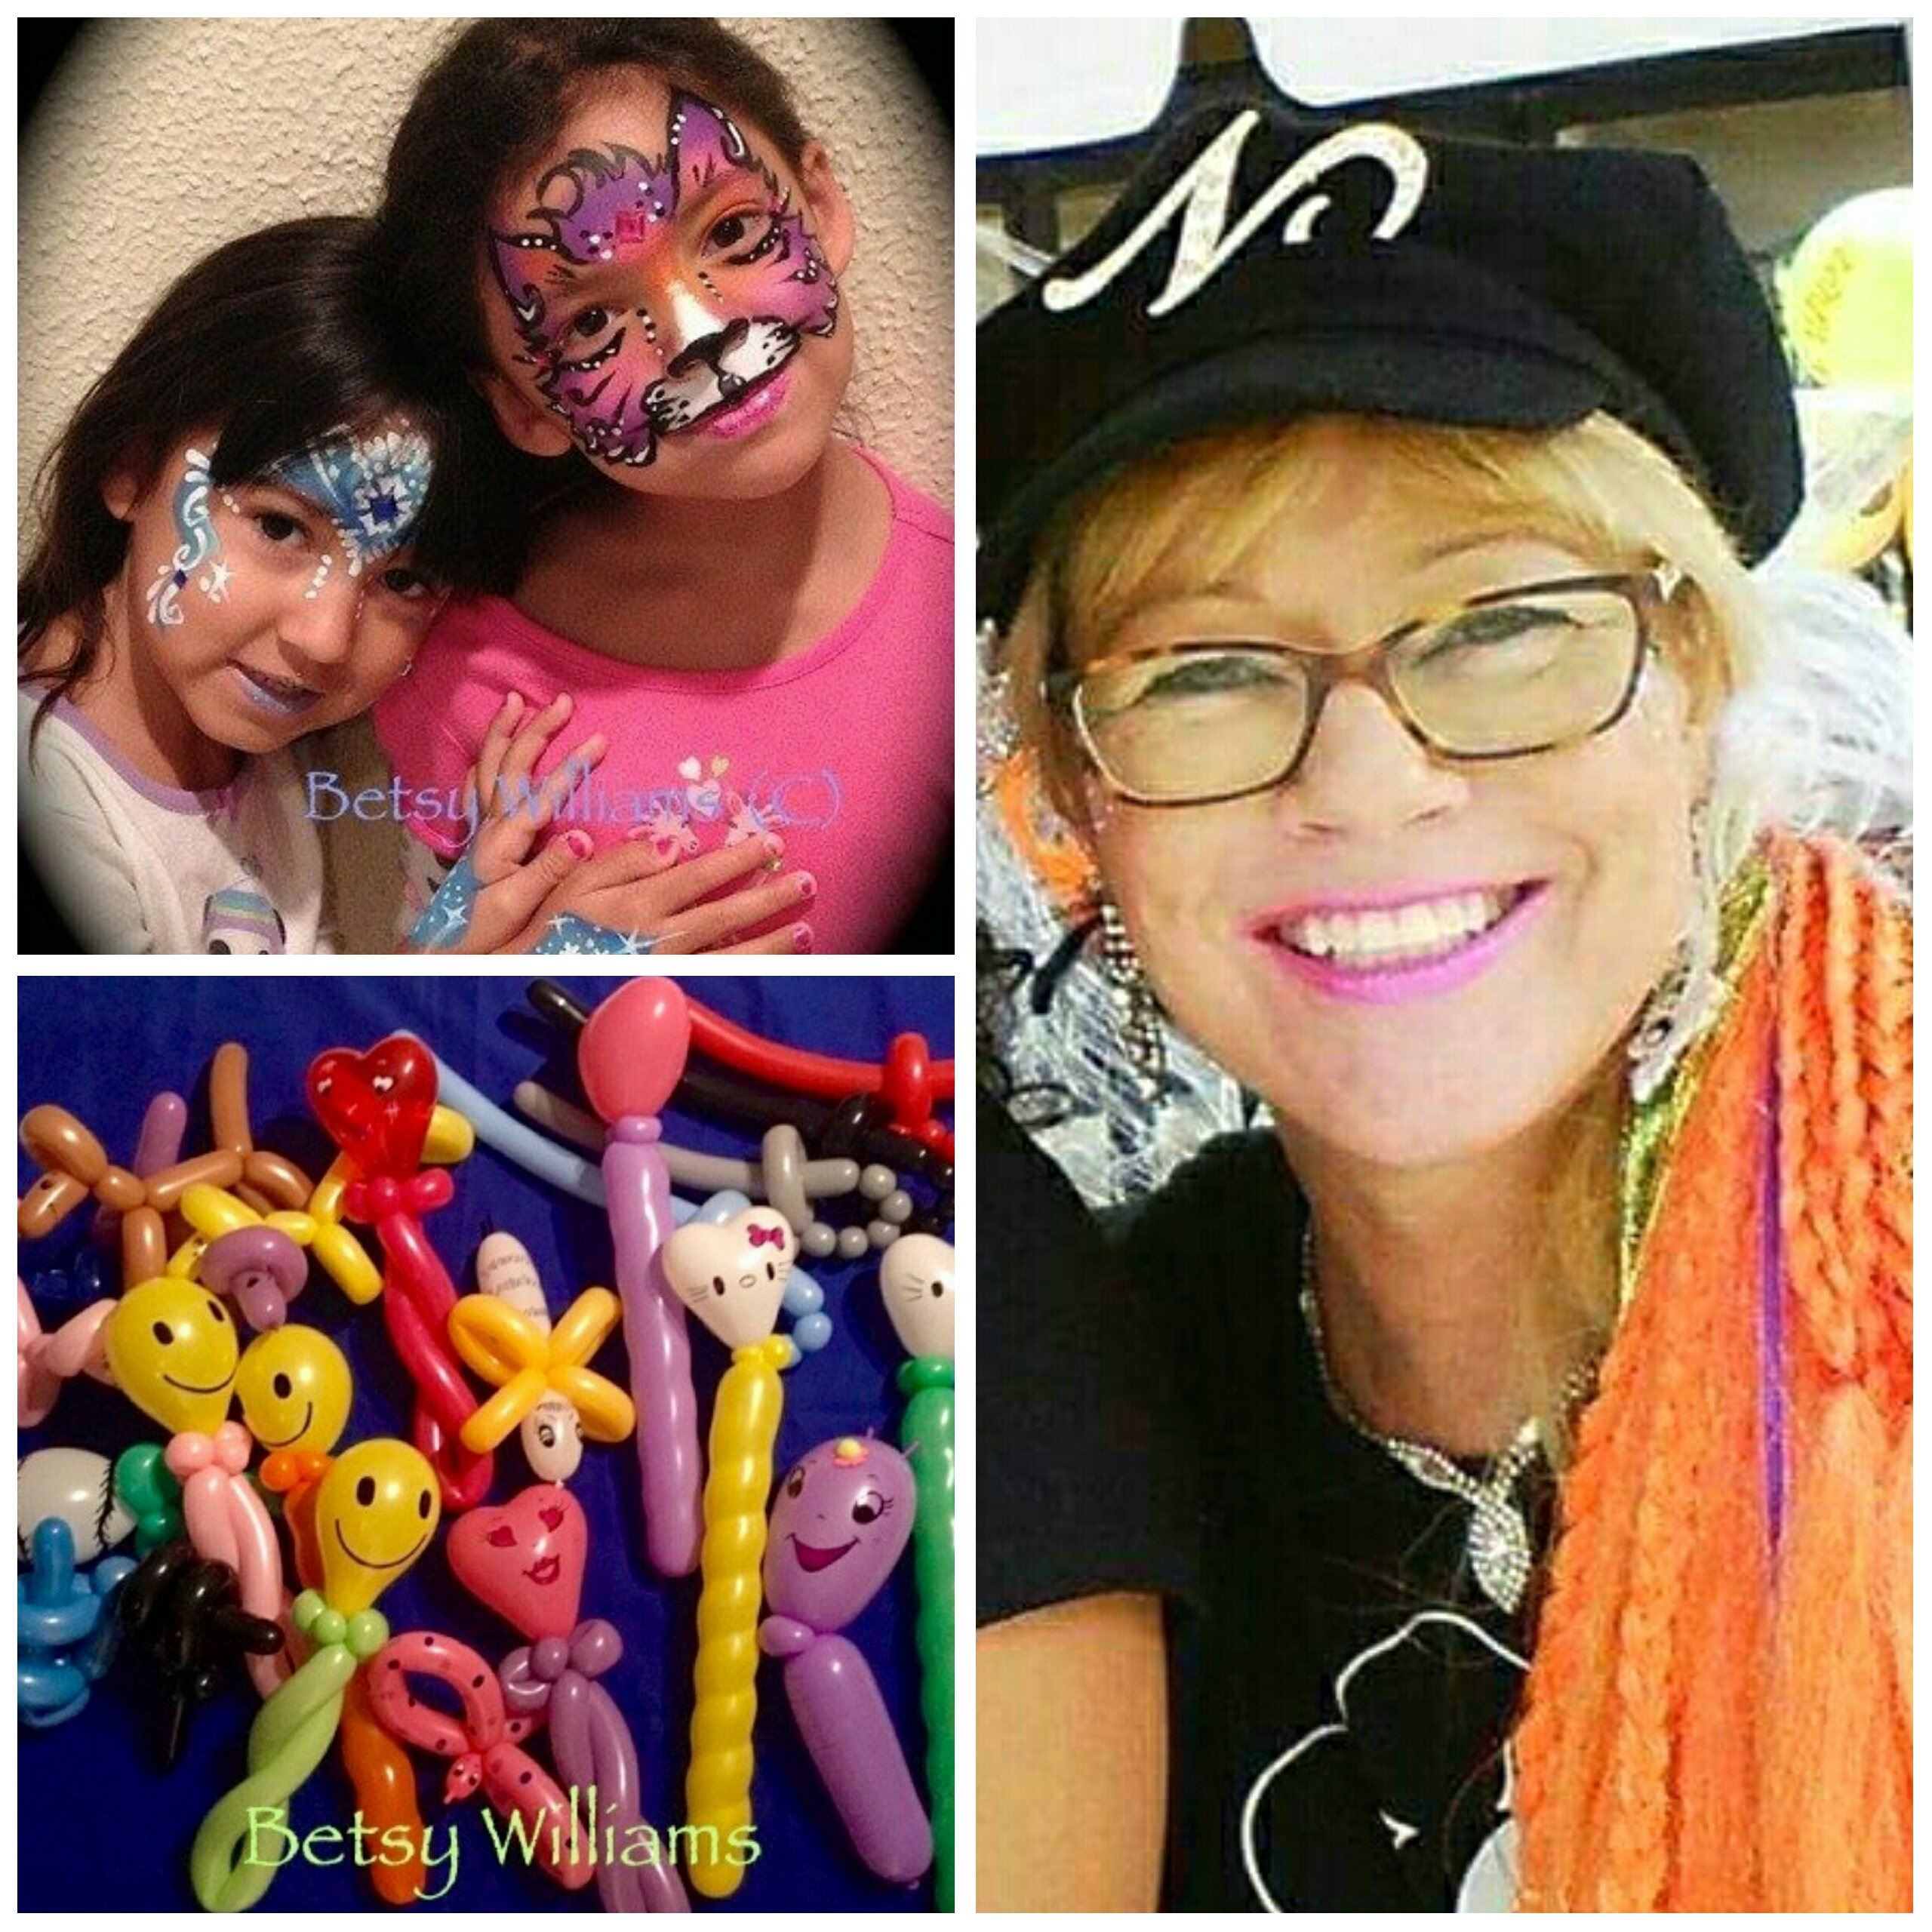 Betsy is an enthusiastic face painter, glitter tattoo artist, and balloon twister.